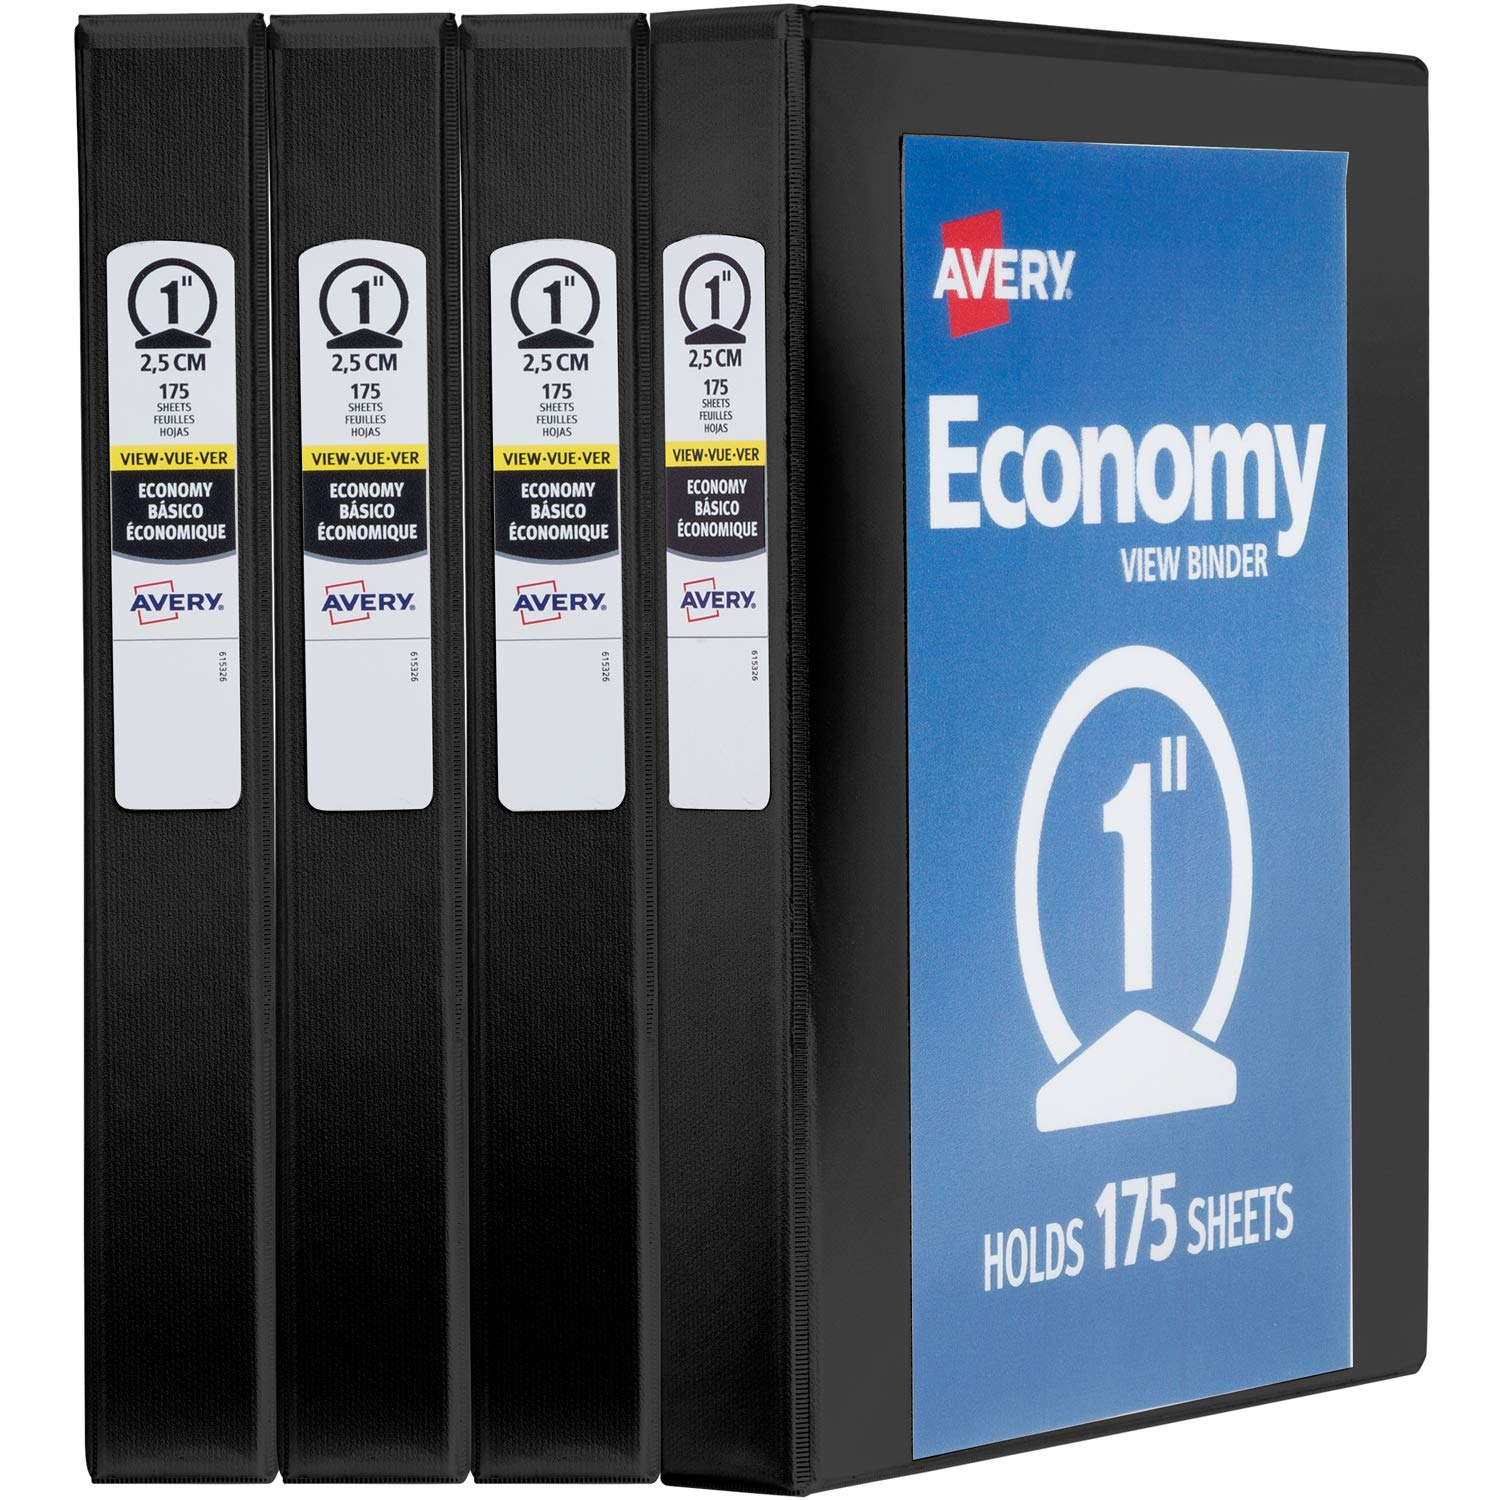 Avery 1'' Economy View 3 Ring Binder, Round Ring, Holds 8.5'' x 11'' Paper, 4 Black Binders (19203) by AVERY